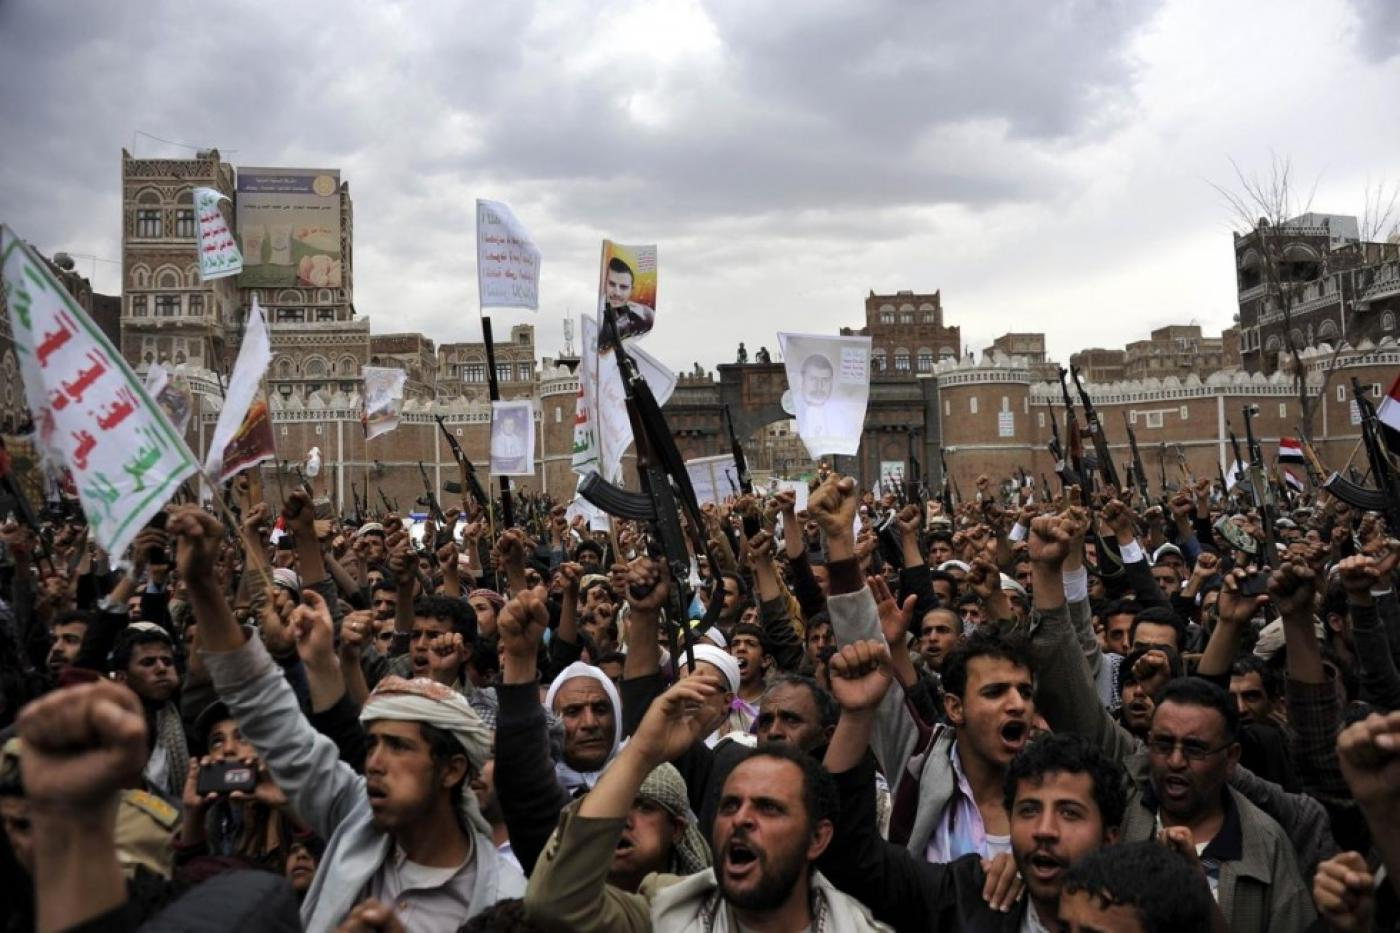 Turkey's siding with Saudis in Yemen crisis further sours